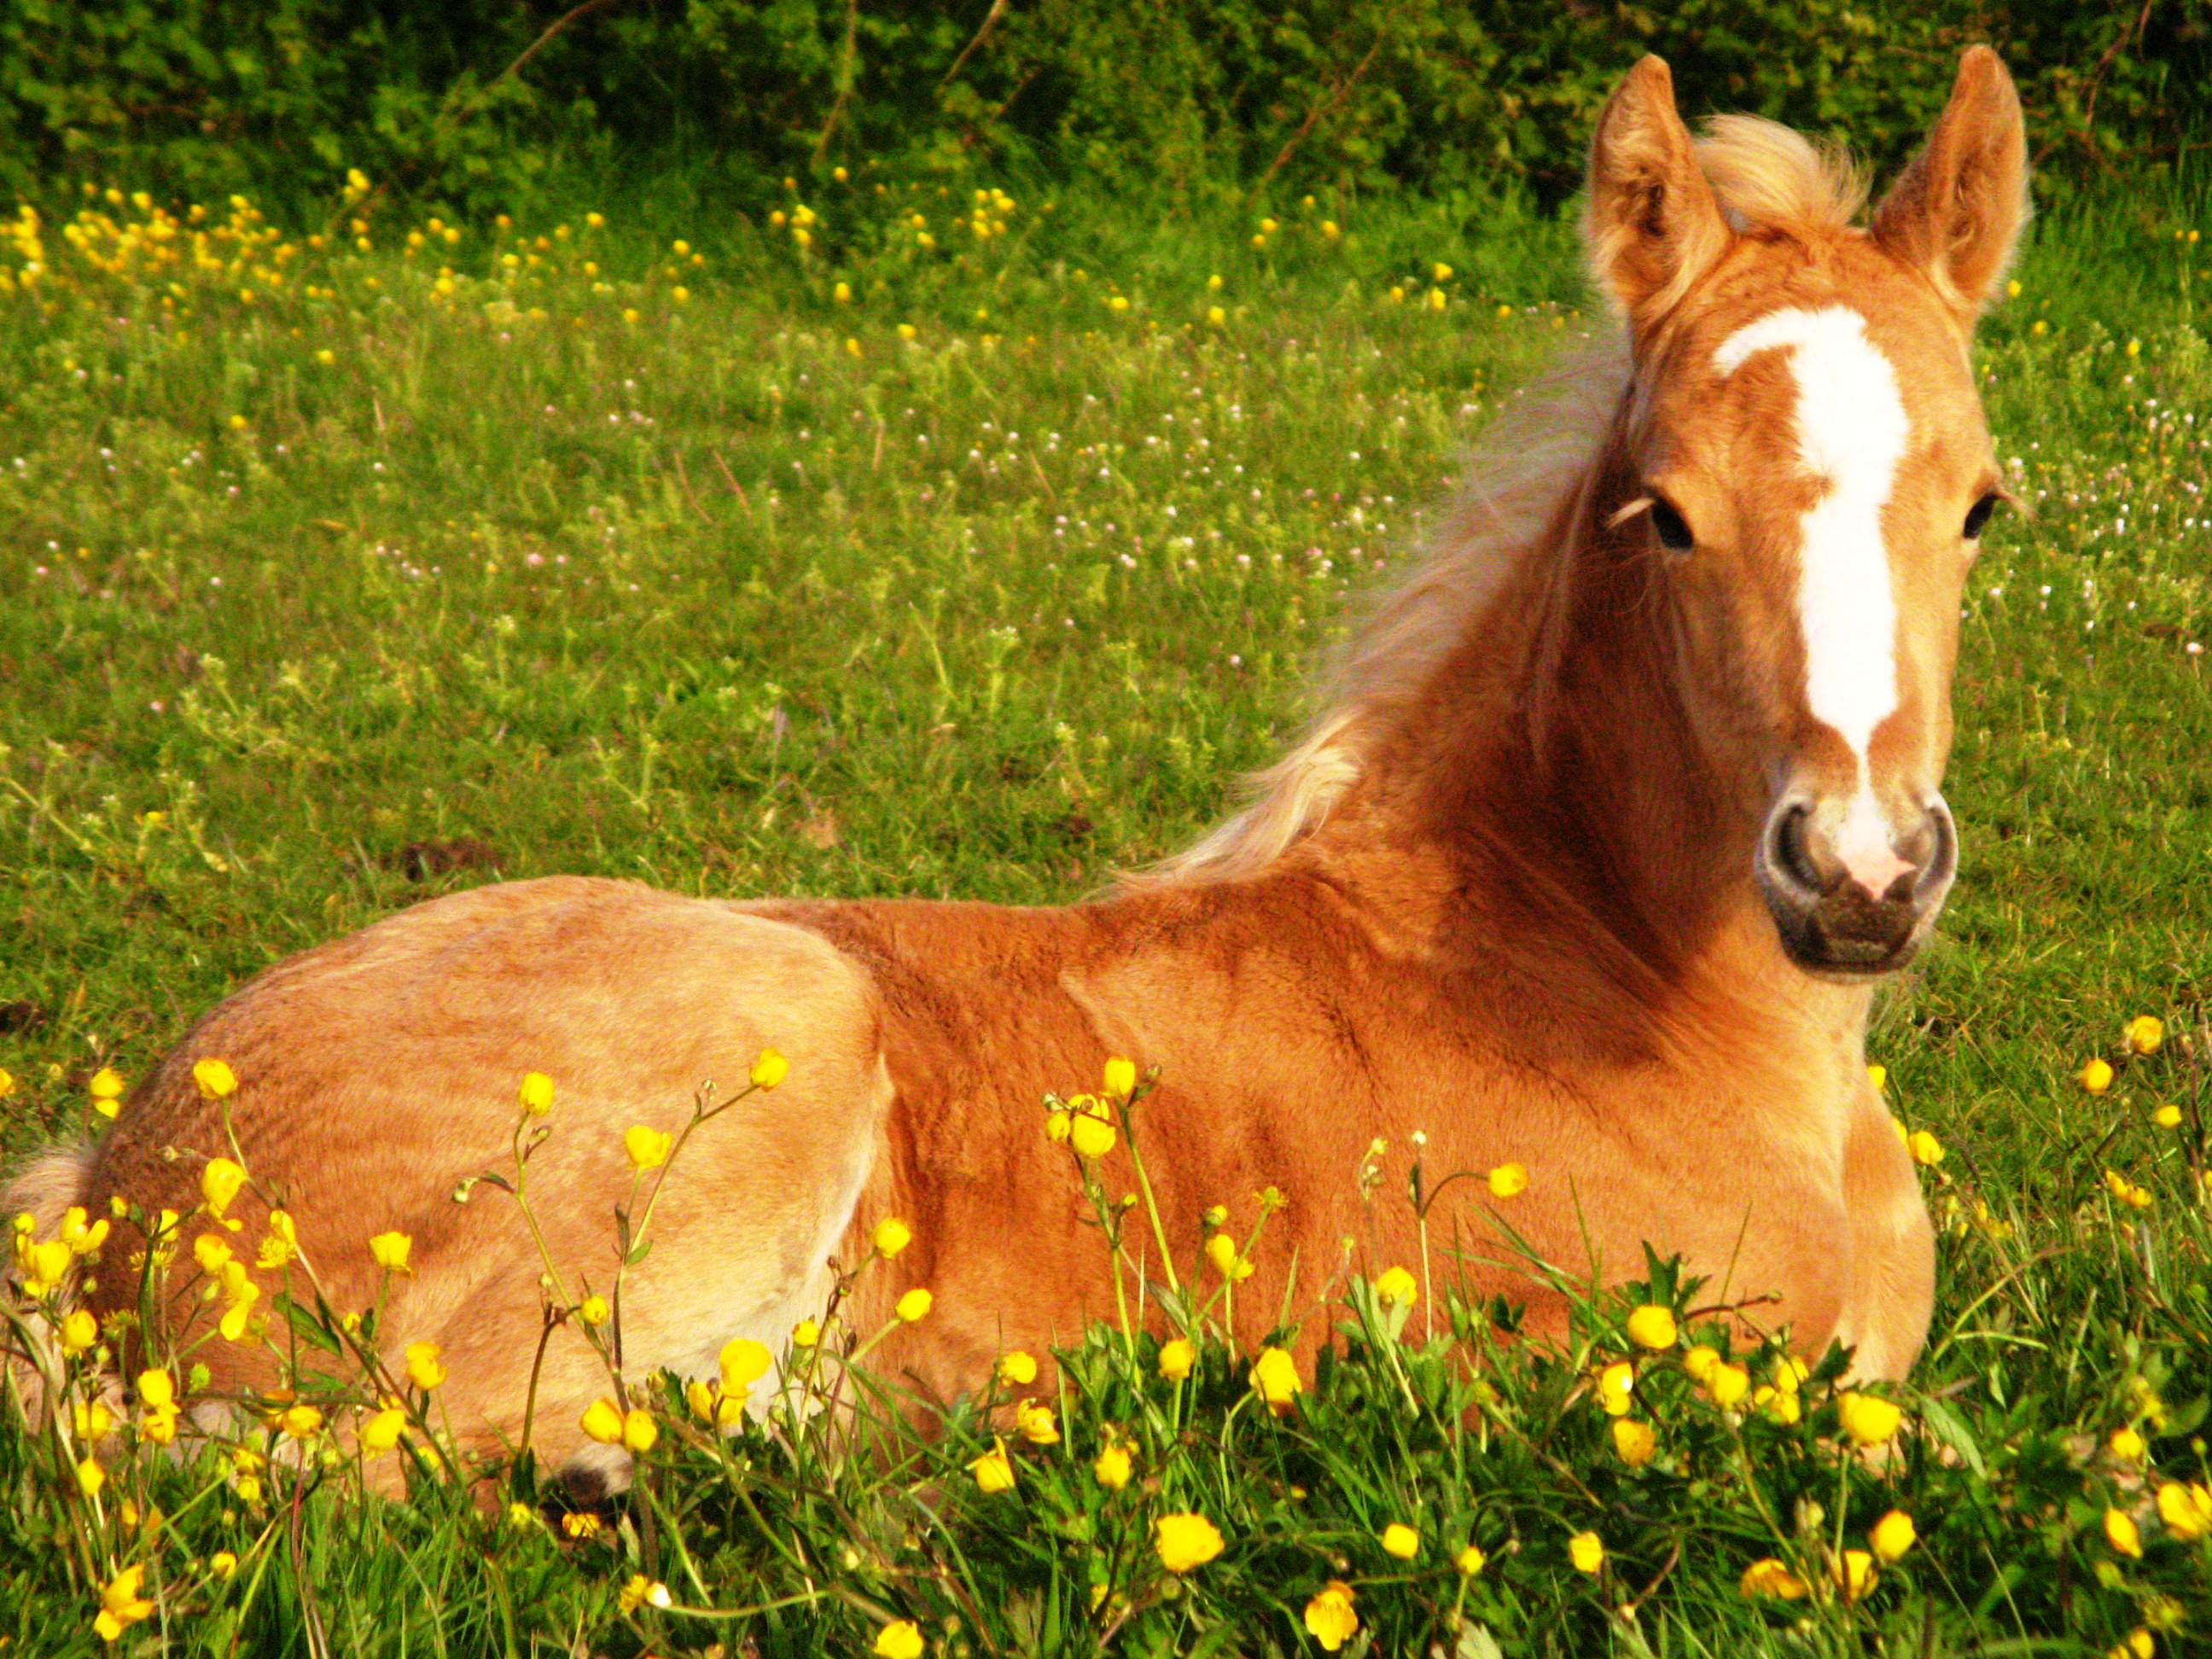 horses horse cute wallpapers palomino background foals golden animals thoroughbred foal pretty wallpapercave chevaux cave les poulain fonds ecran couche